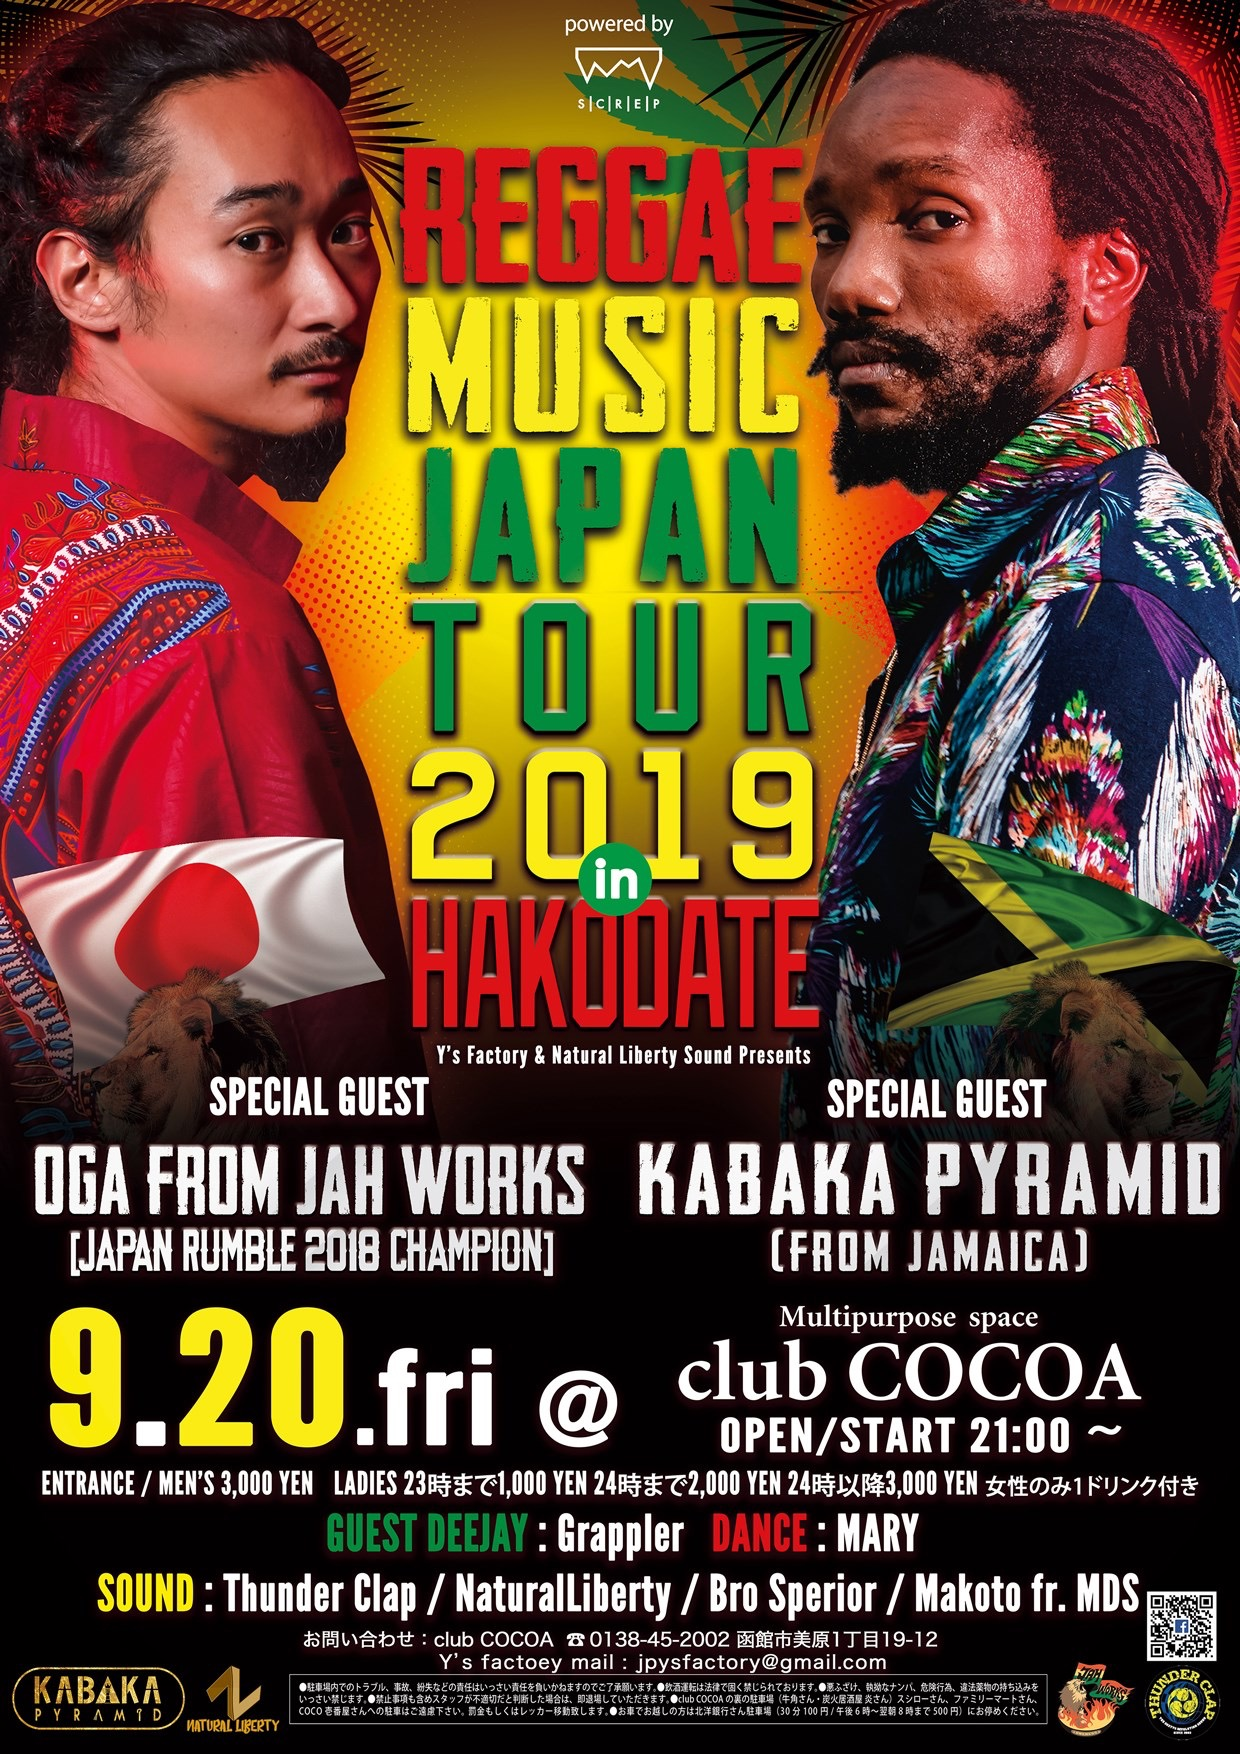 REGGAE MUSIC JAPAN TOUR 2019 in HAKODATE (Reggae)